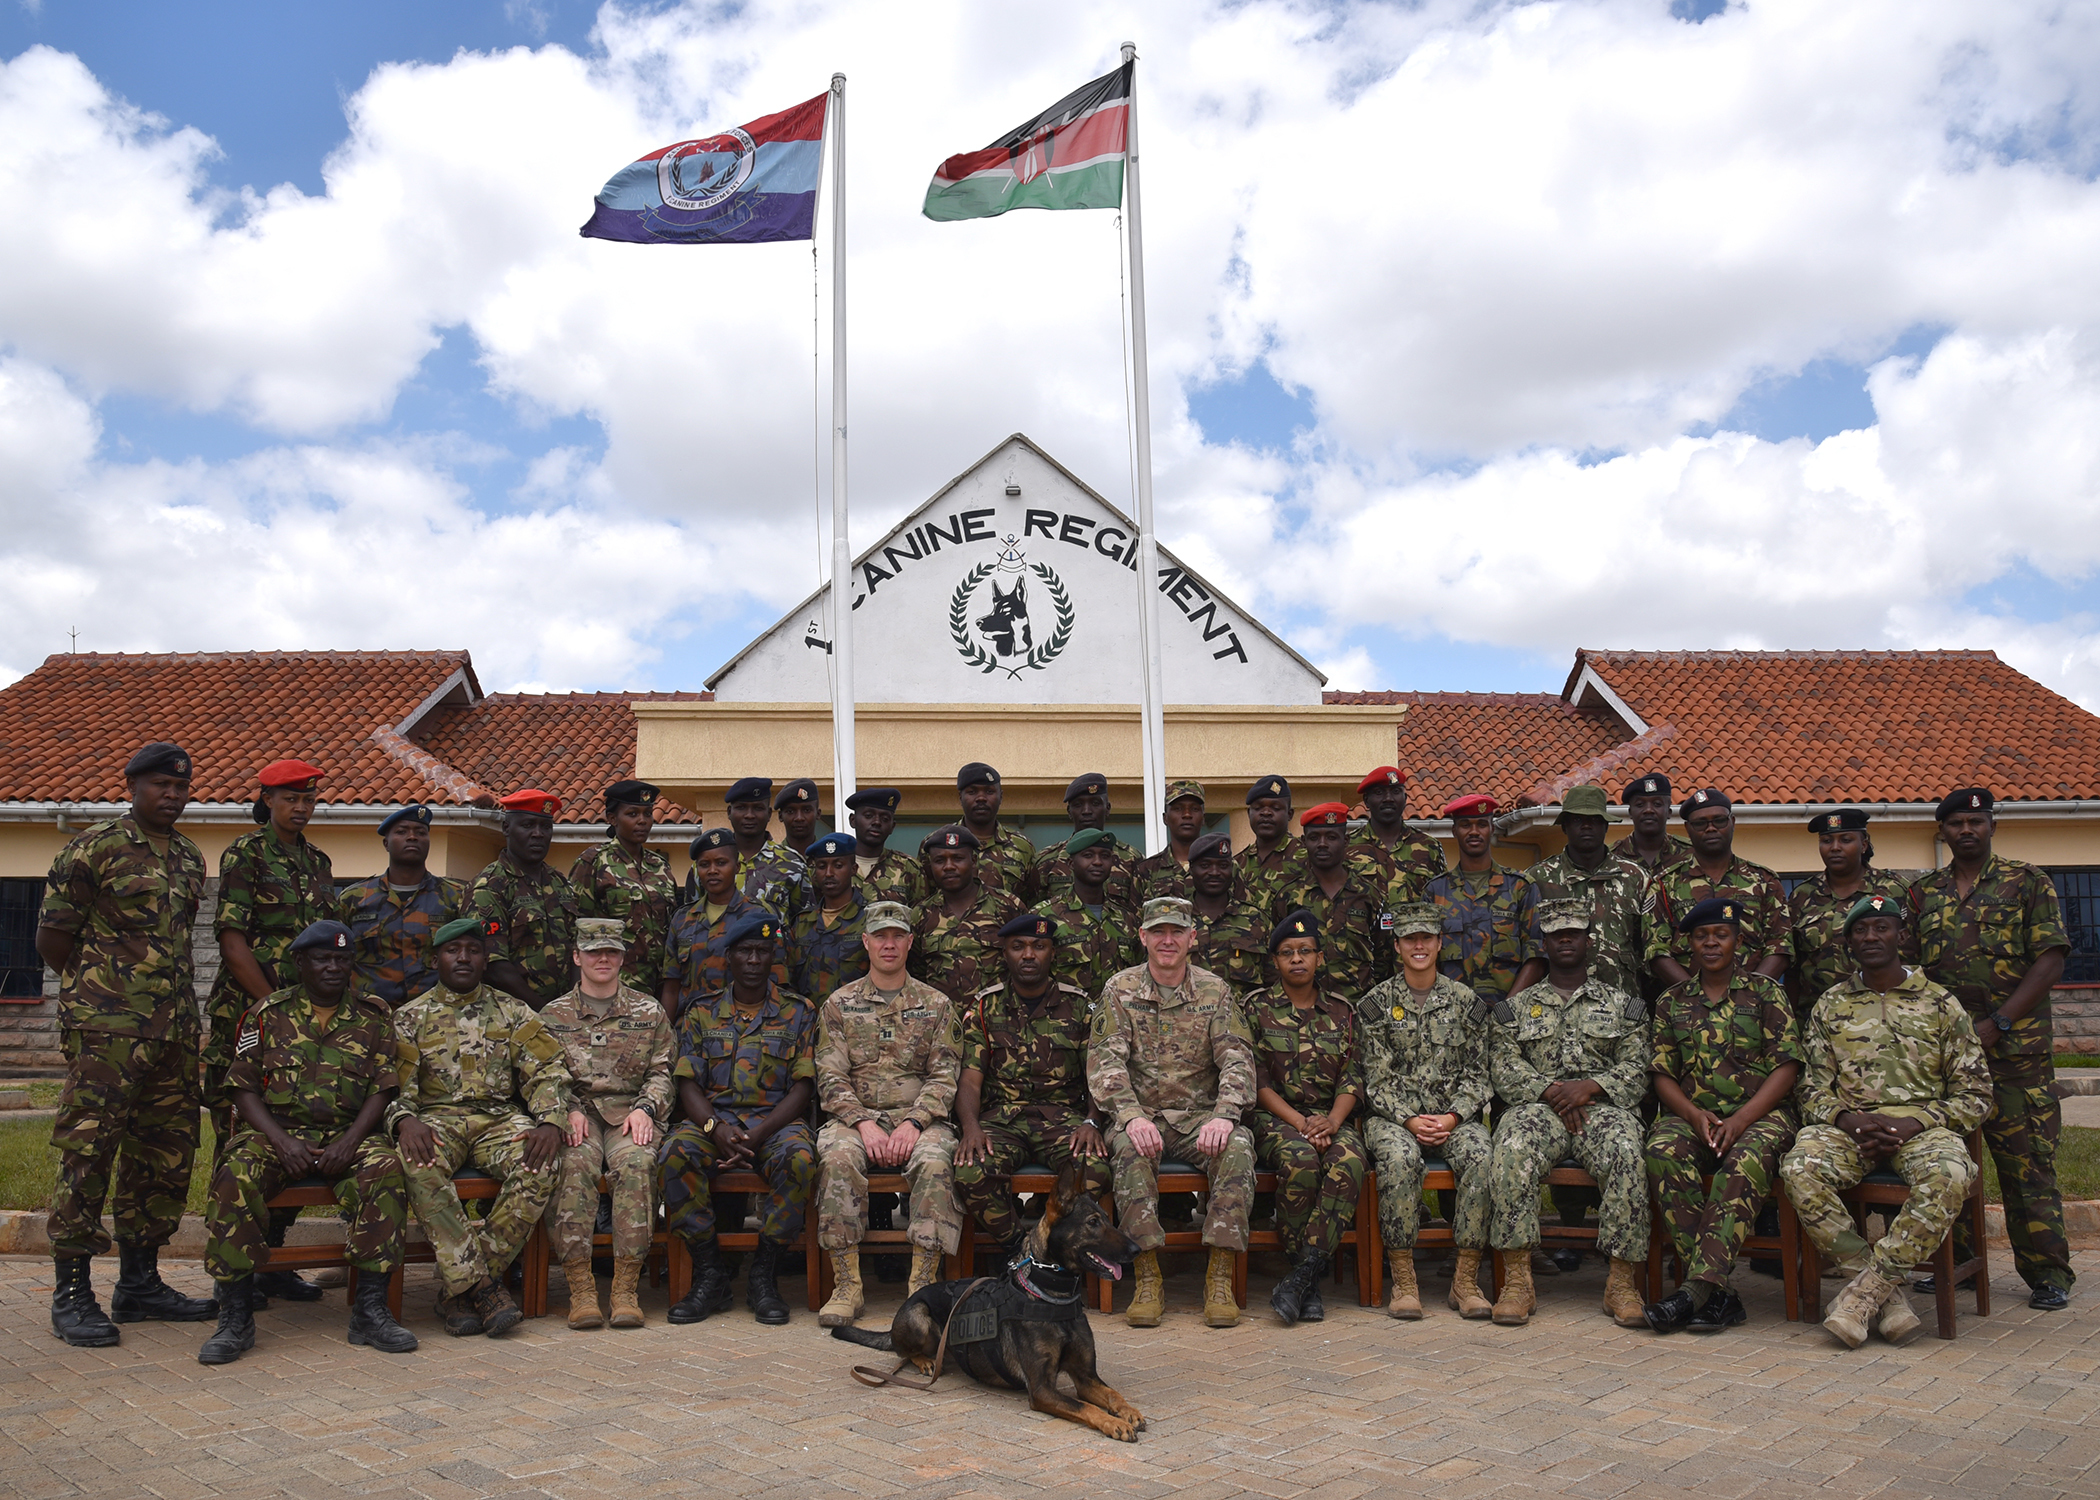 Veterinarians from the U.S. Army's 403rd Civil Affairs Battalion's Functional Specialty Team, assigned to Combined Joint Task Force-Horn of Africa, and U.S. Navy military working dog handlers, both from Camp Lemonnier, Djibouti, pose for a photo with members of the Kenya Defence Force (KDF) 1st Canine Regiment in Nairobi, Kenya, Nov. 23, 2018. The U.S. subject matter experts visited the Kenyan handlers and veterinarians to share best practices in their field. (U.S. Air Force photo by Senior Airman Kirsten Brandes)